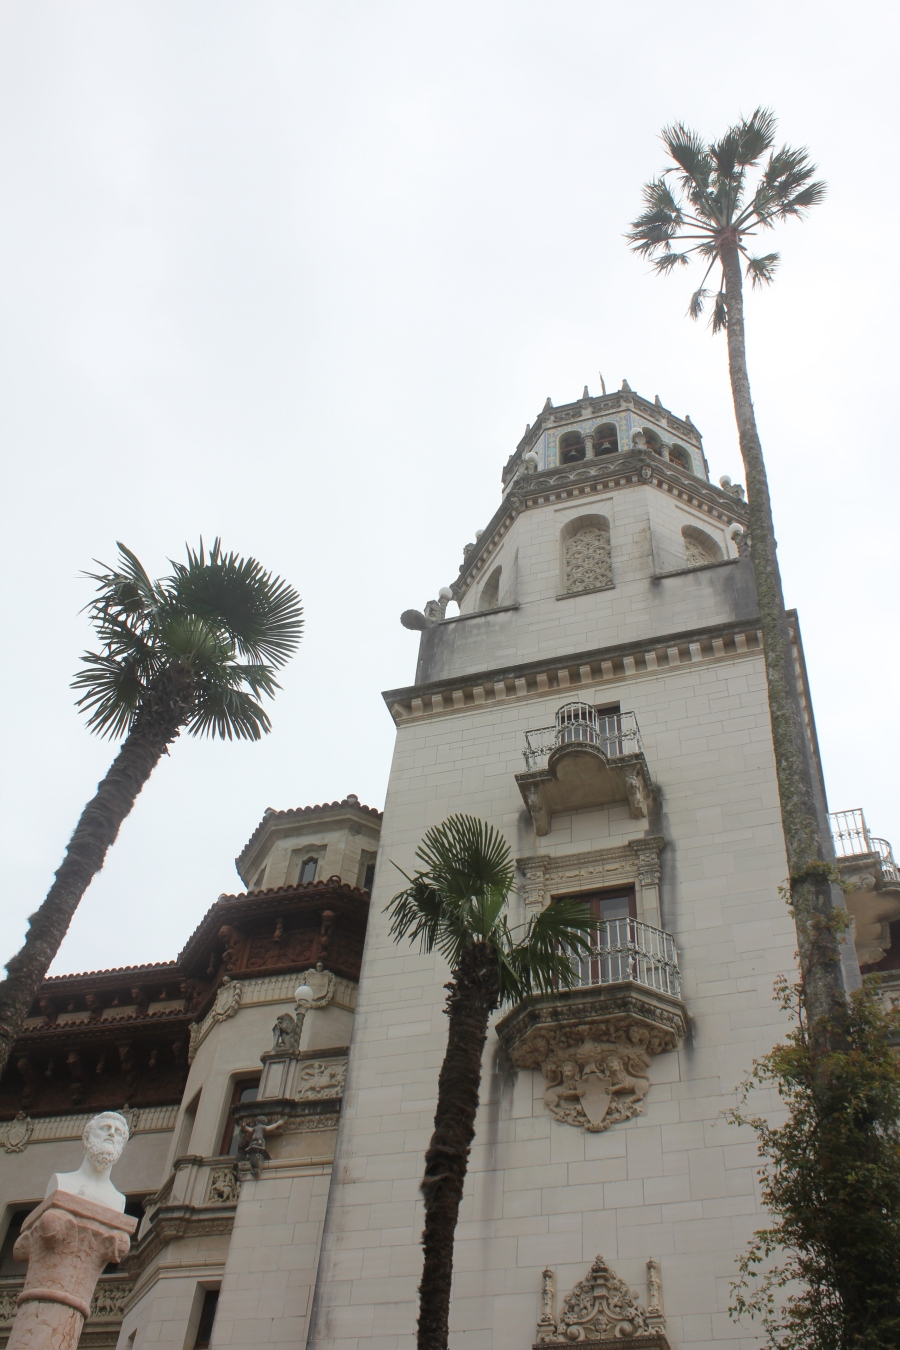 Hearst tower with palms